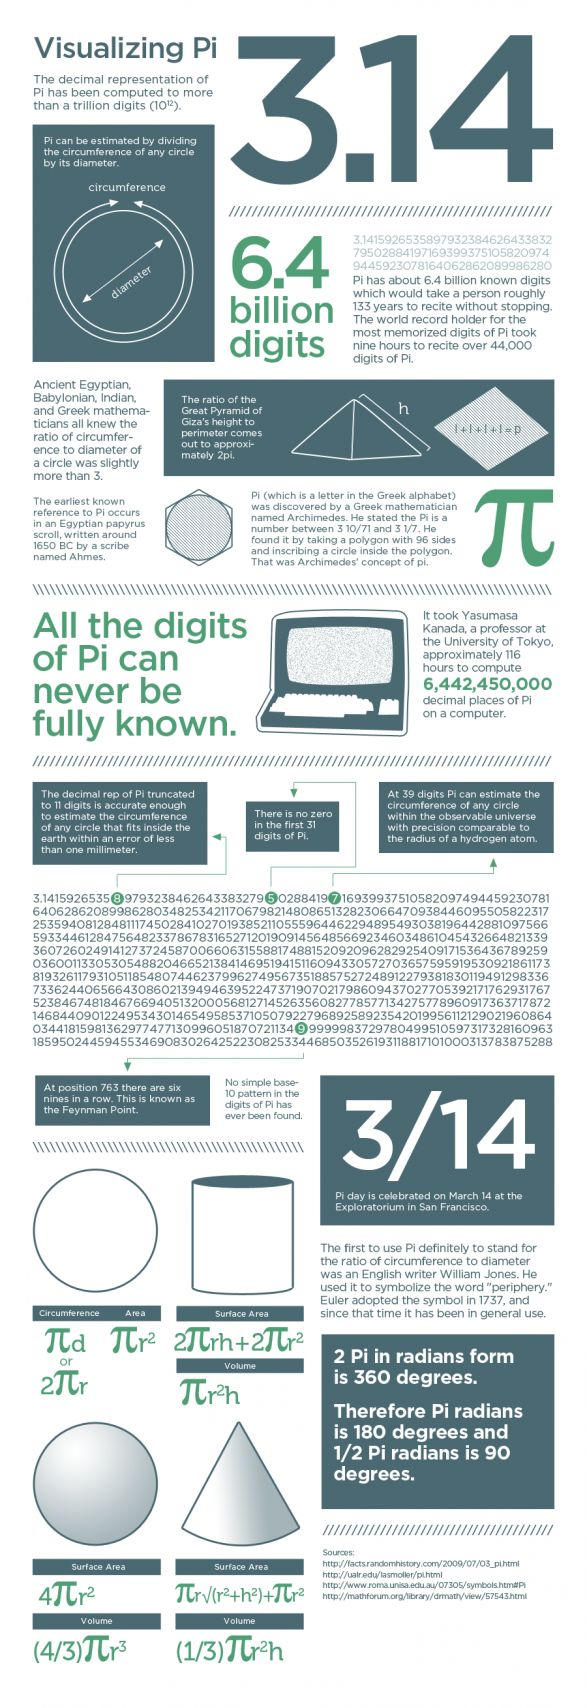 Visualizing Pi - Happy Pi Day!